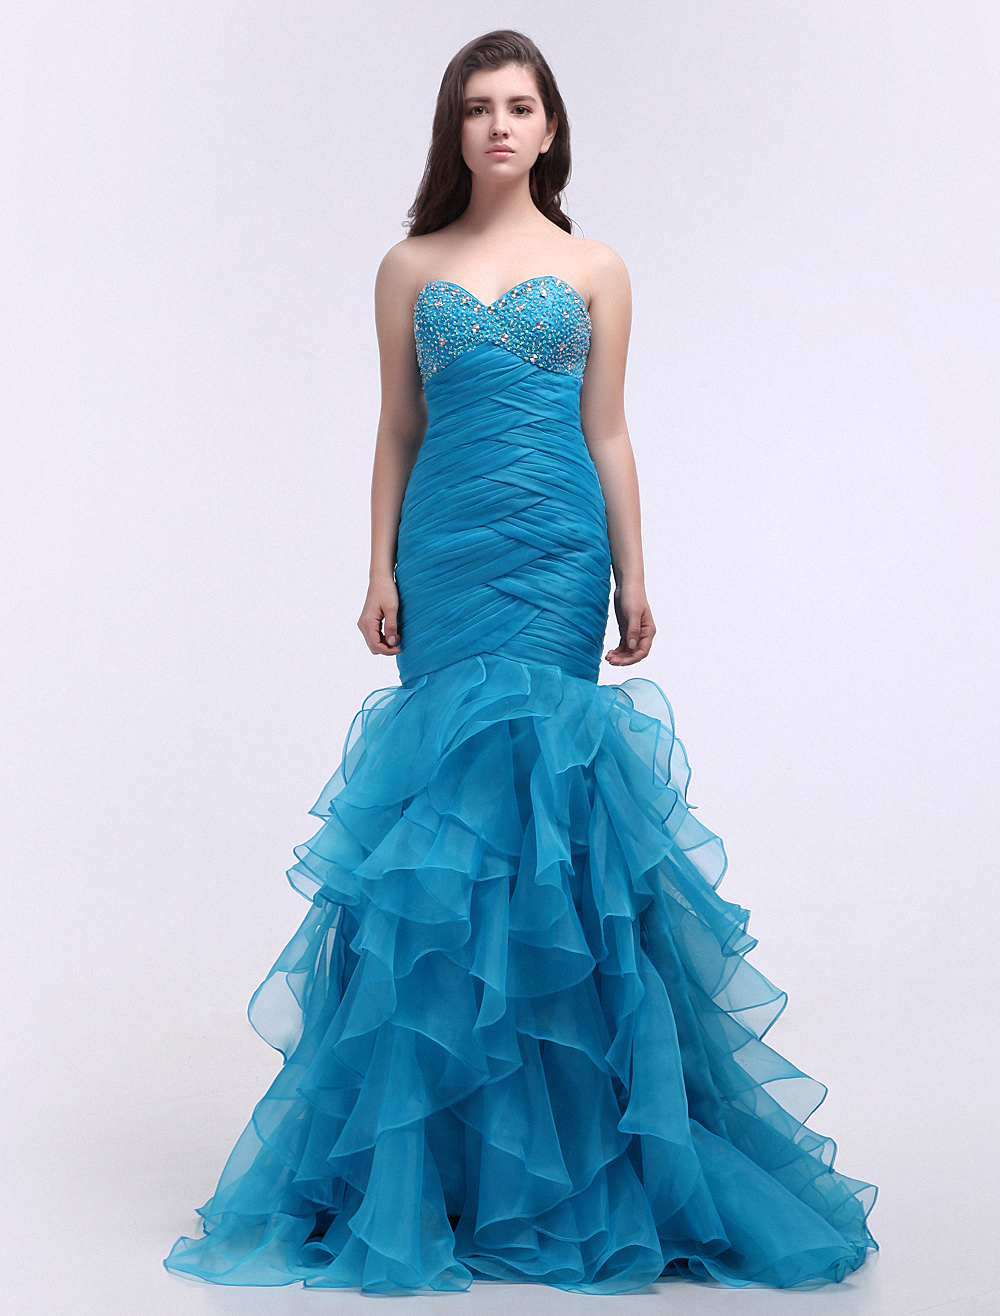 Buy Mermaid Prom Dress Cyan Sweetheart Ruffle Beading Party Dress With Sweep Train for $161.09 in Milanoo store